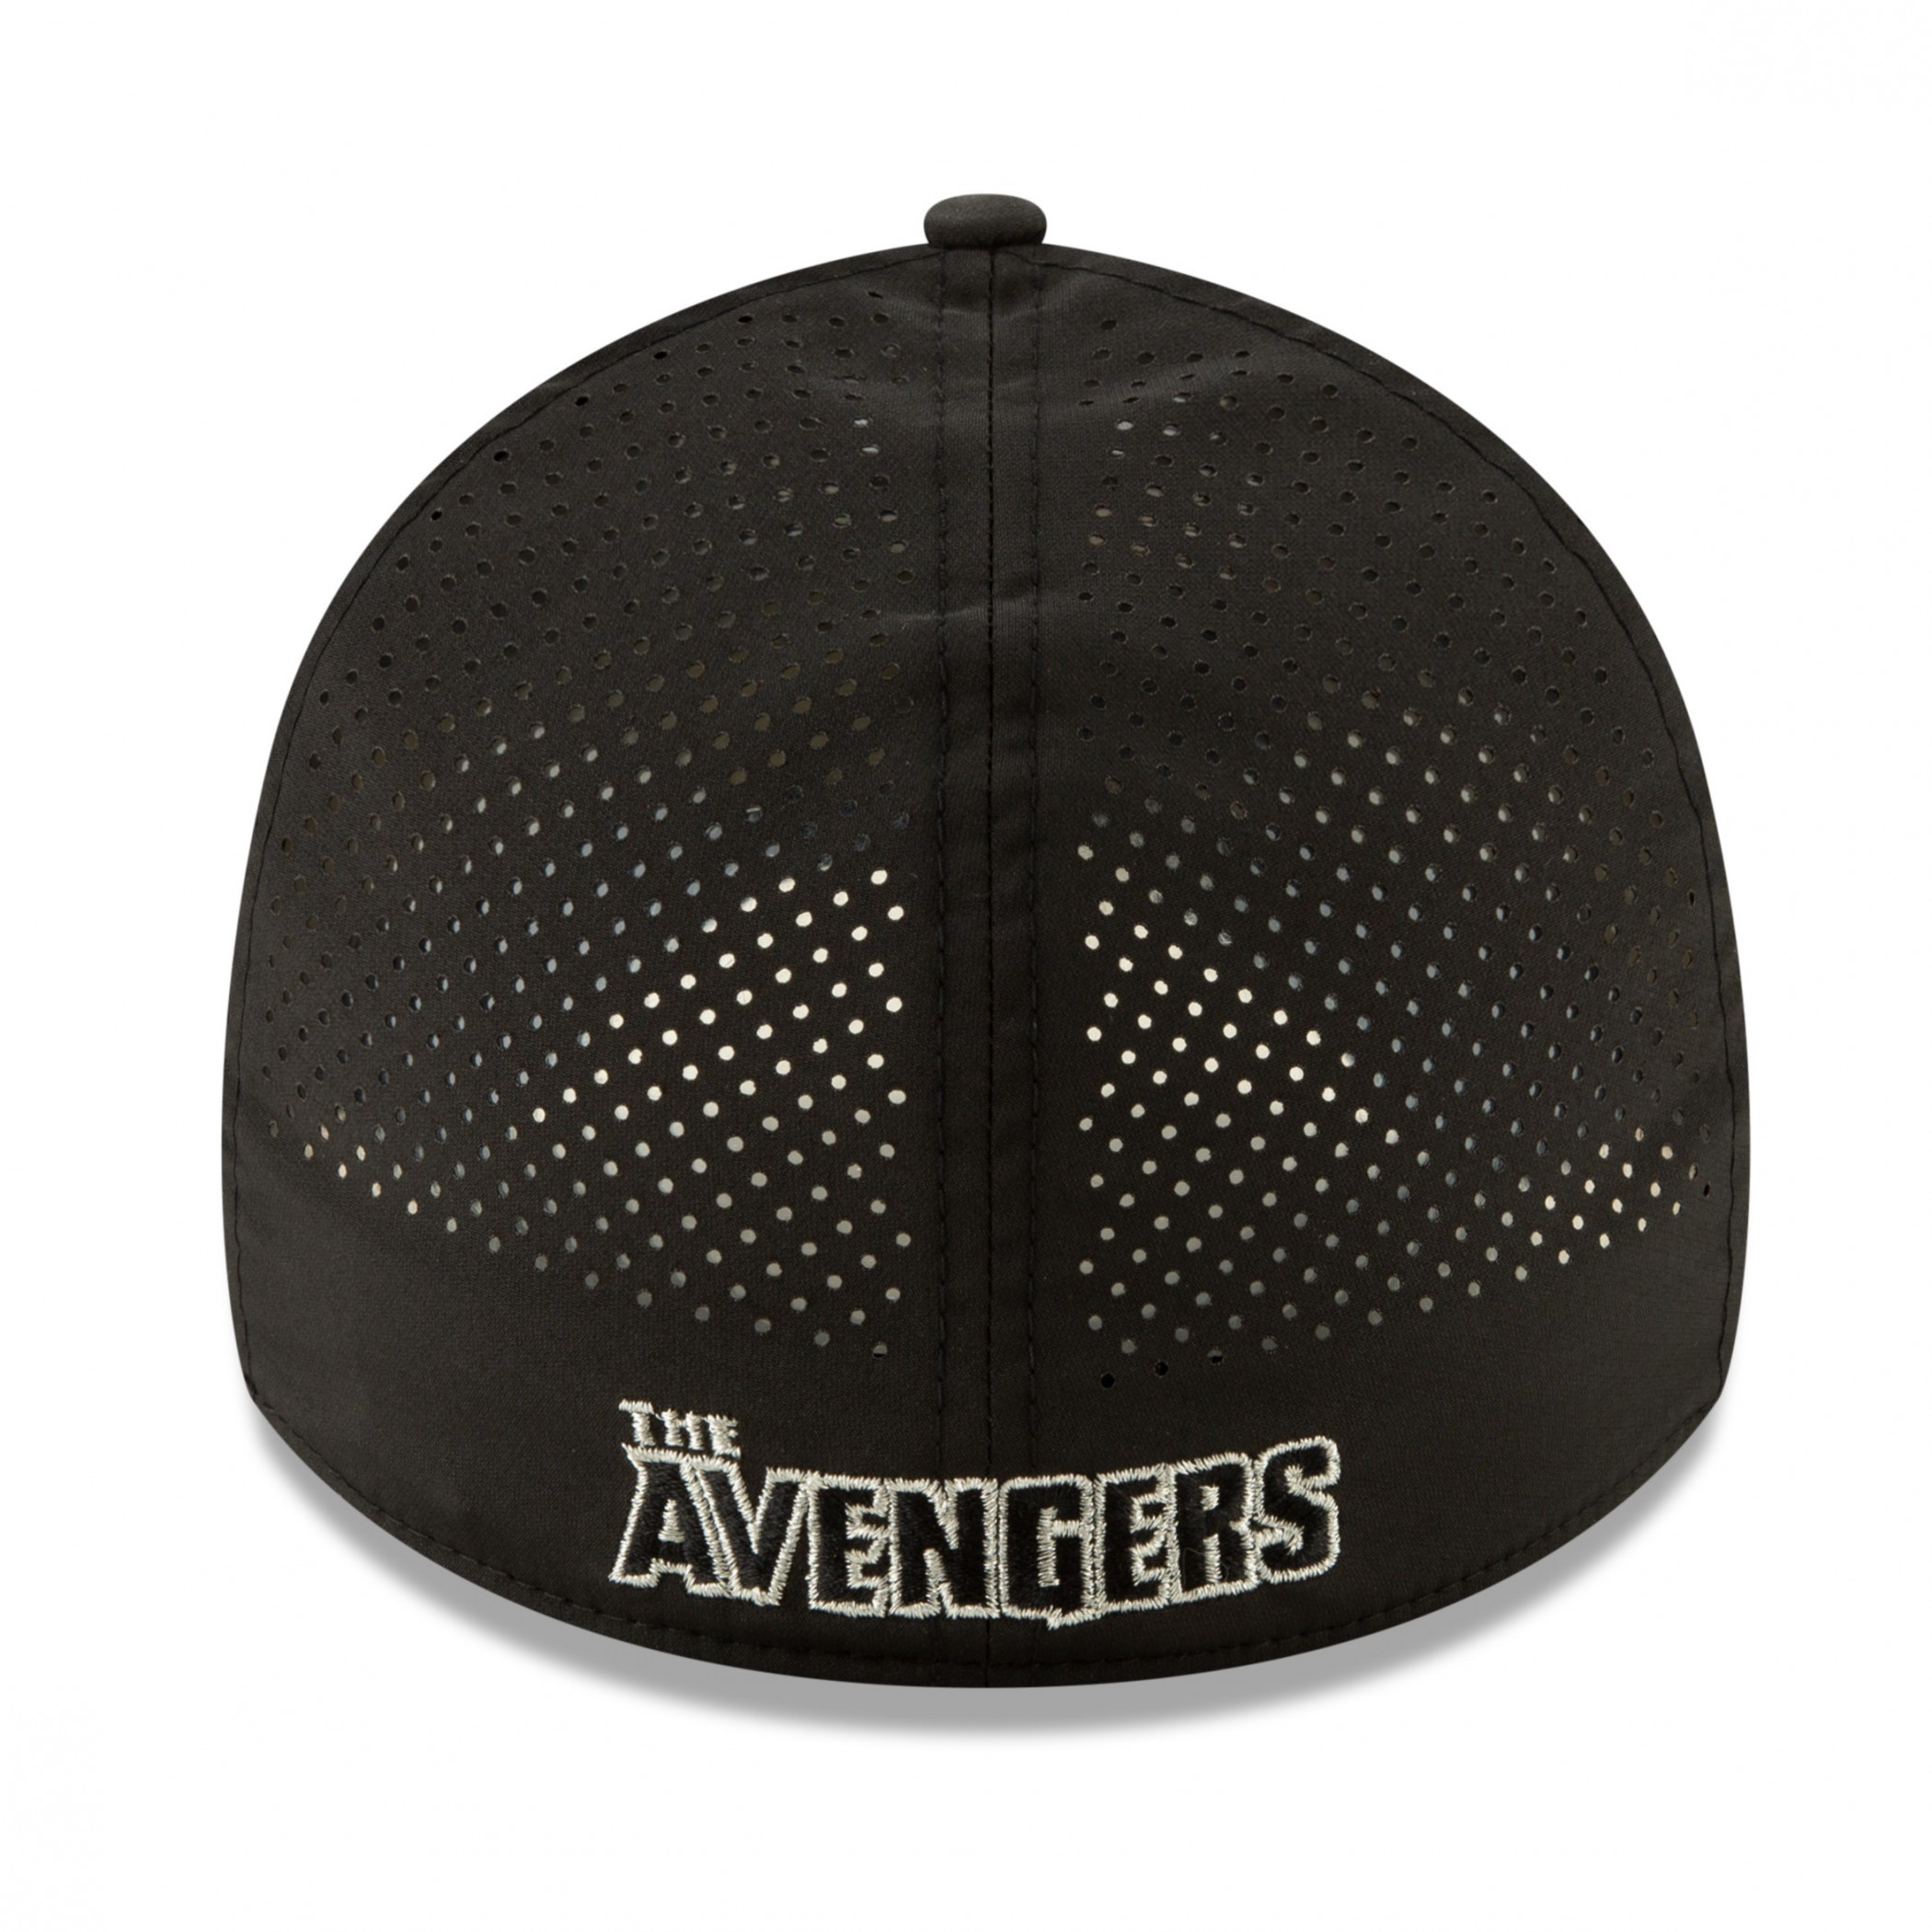 Avengers Silver Symbol Perforated for Play New Era 39Thirty Fitted Hat